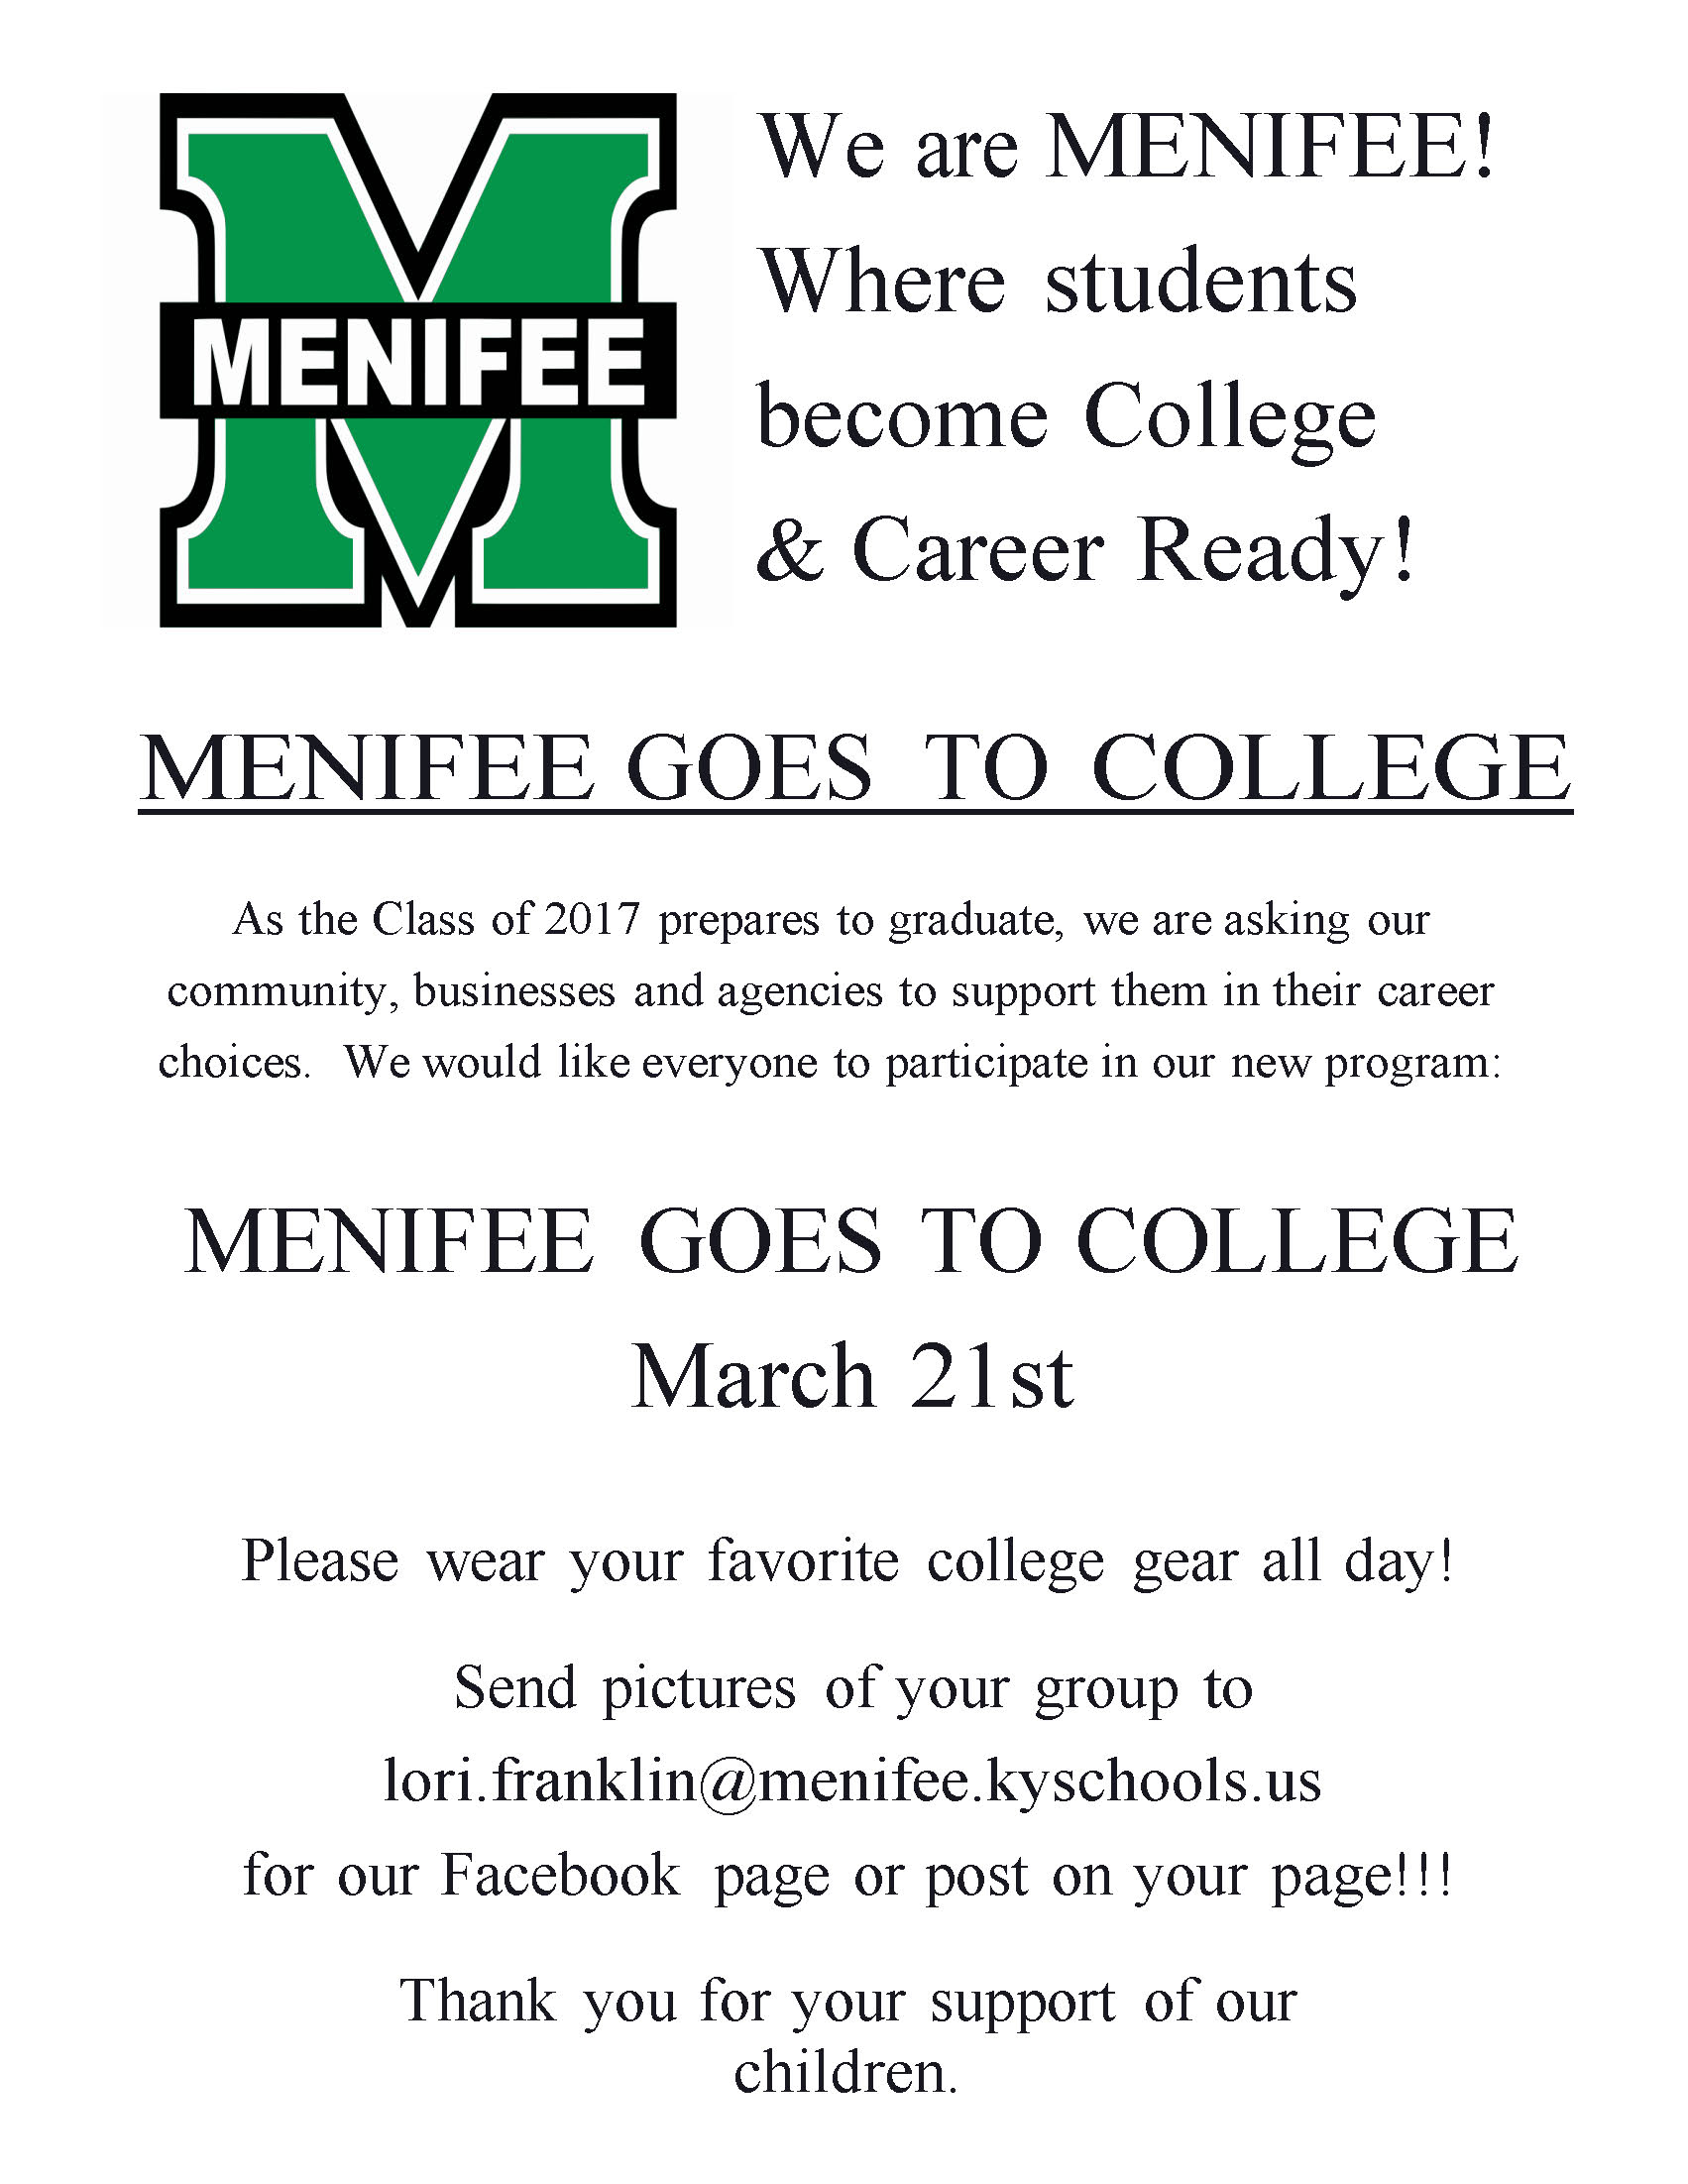 Menifee Goes to College March 21